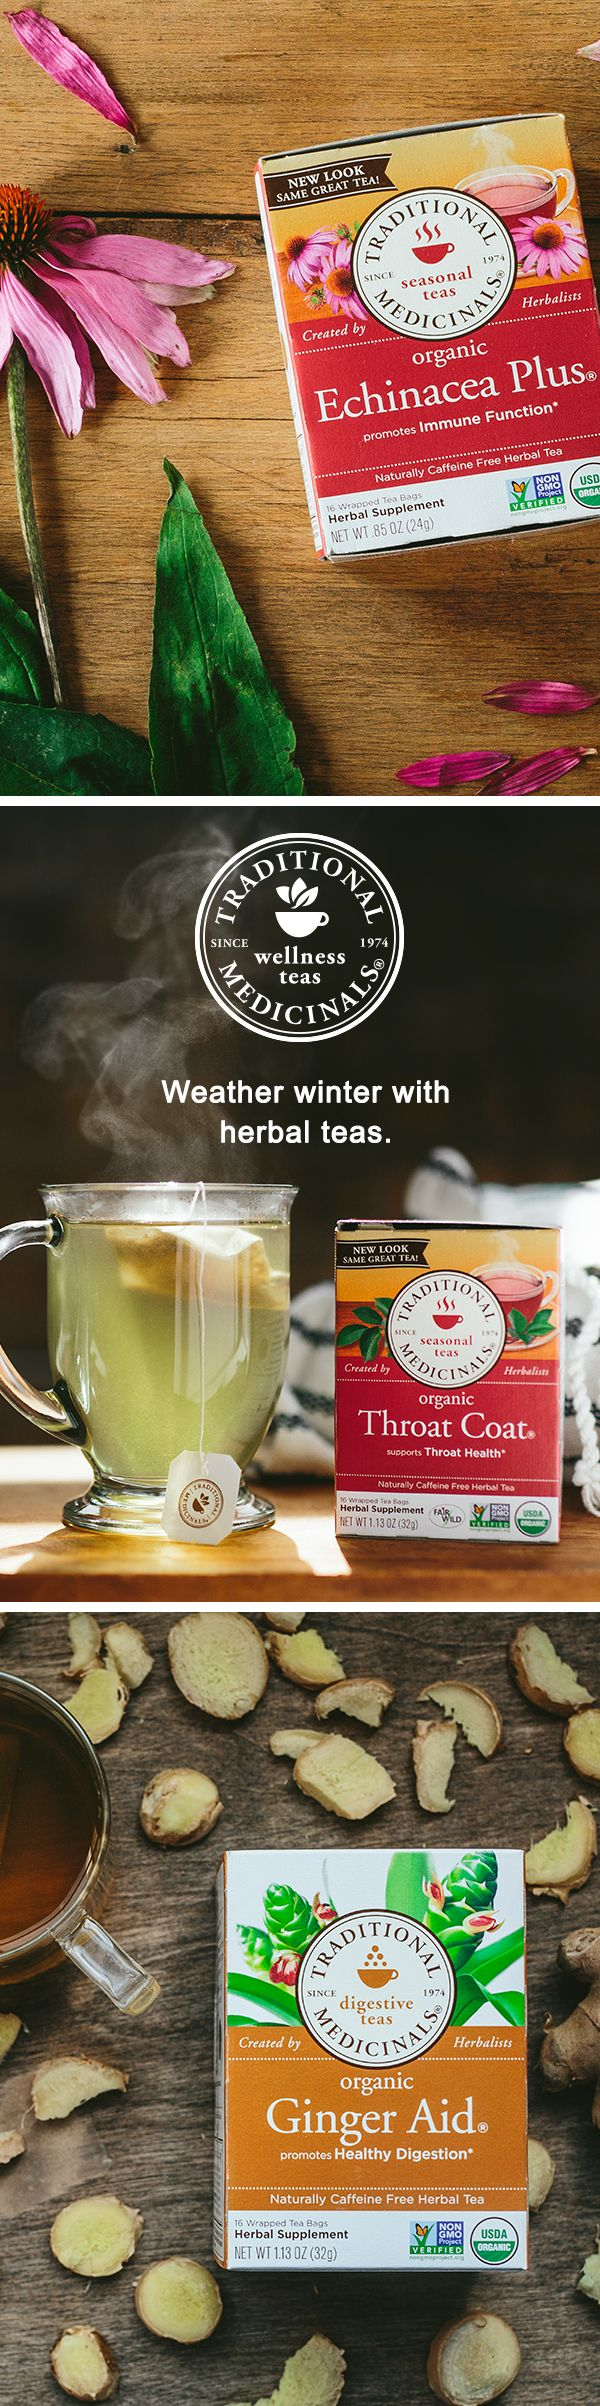 Weather winter with some help from herbal tea. Using centuries-old wisdom, Traditional Medicinals herbalists create tea blends based on the power of plants. Need seasonal support? Steep a cup of soothing Throat Coat made with slippery elm. Looking for digestive support? Enjoy a warm cup of Ginger Aid. Or give your immune system a boost with our tongue-tingling Echinacea Plus.